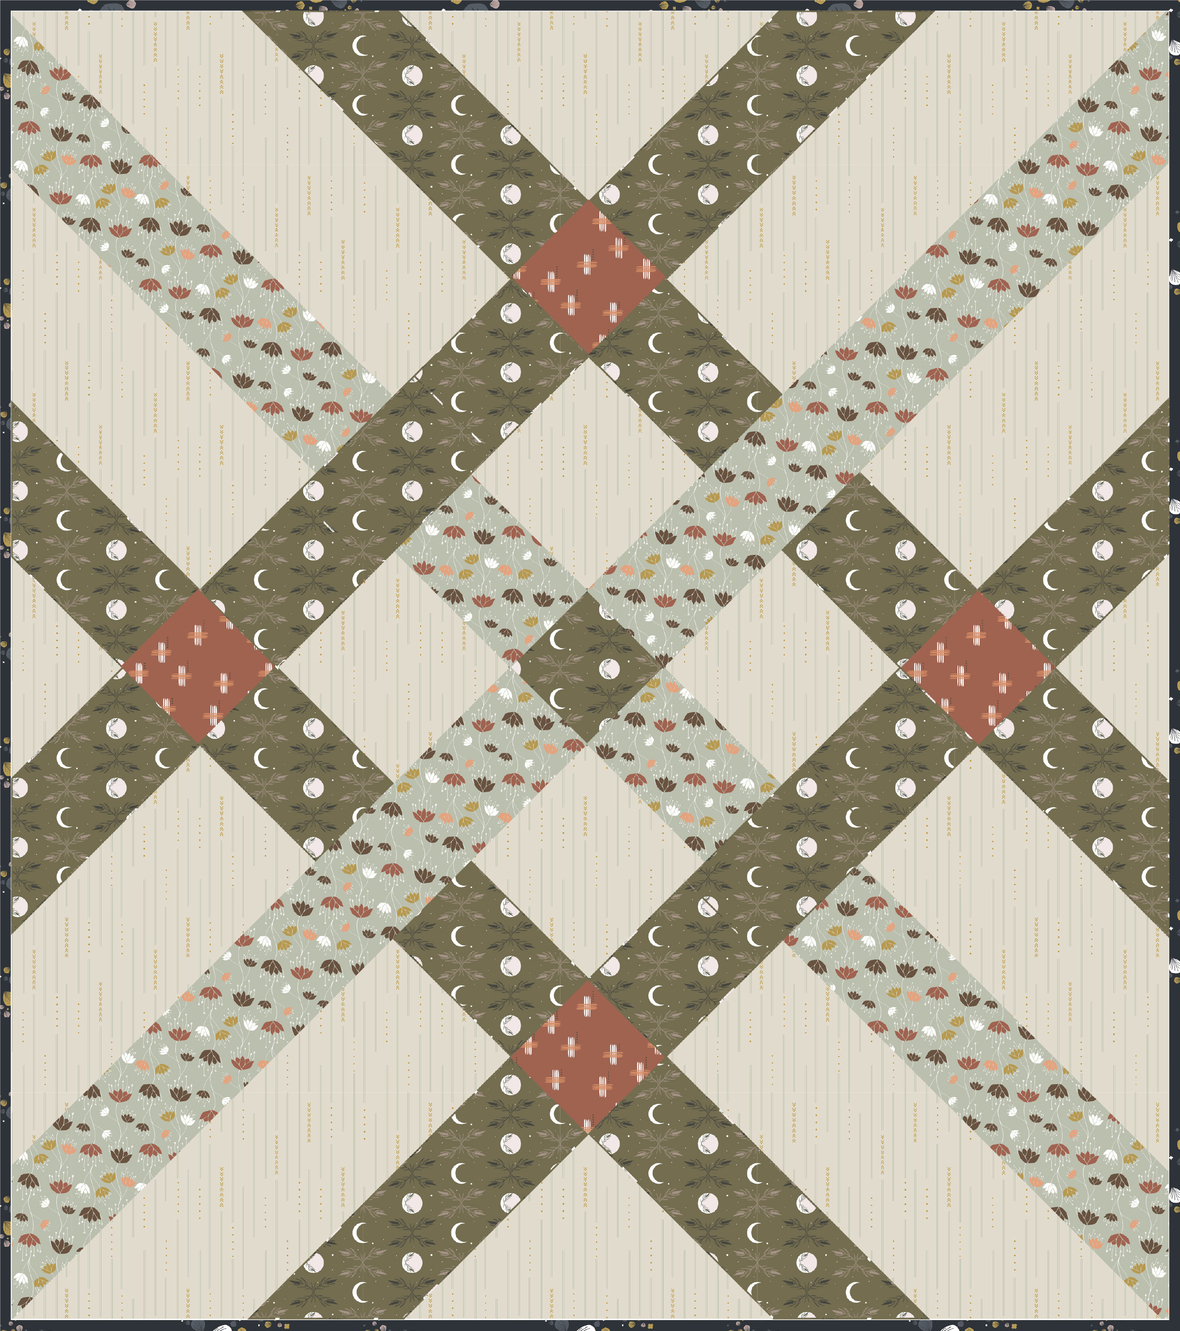 Fishing Net by Suzy Quilts